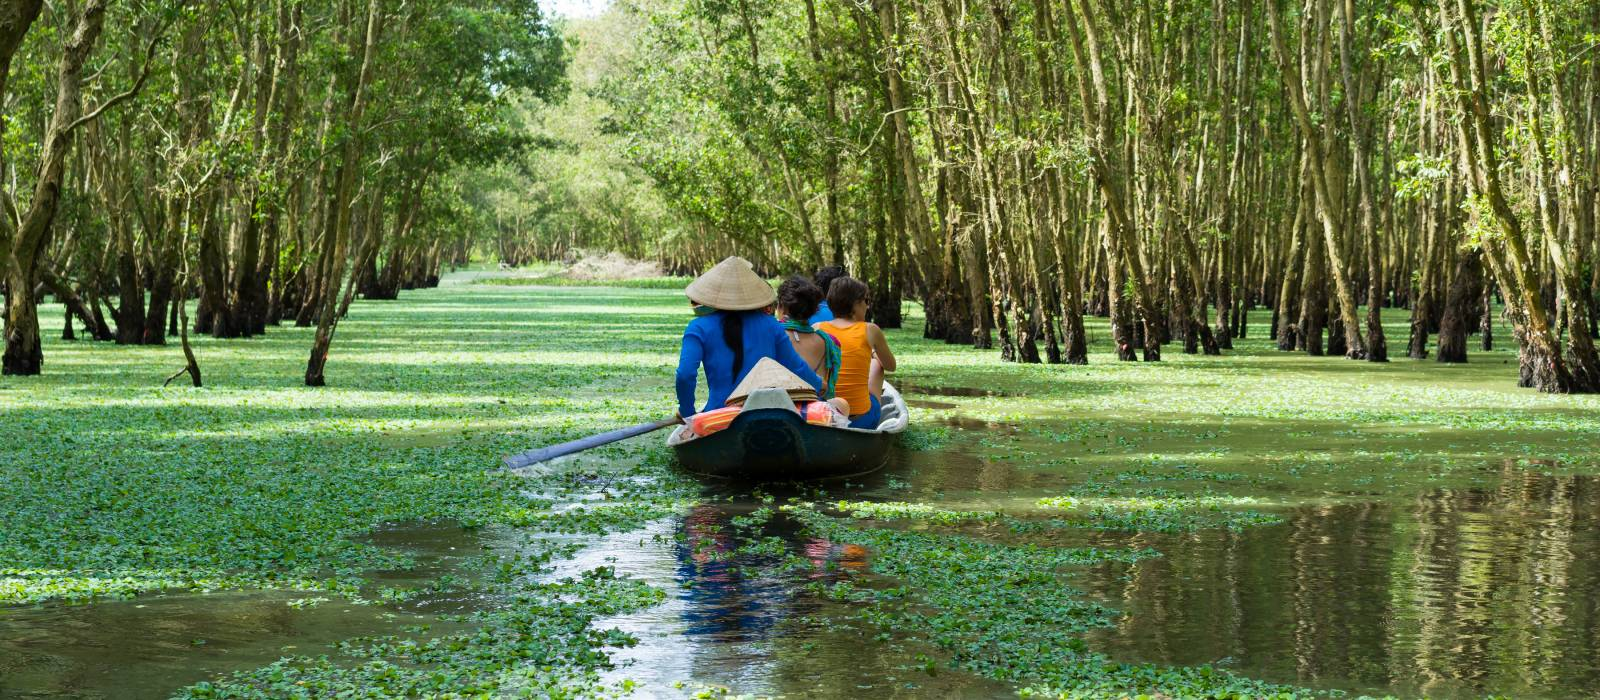 Tourism rowing boat in Tra Su flooded indigo plant forest in An Giang, Mekong delta, Vietnam, Asia